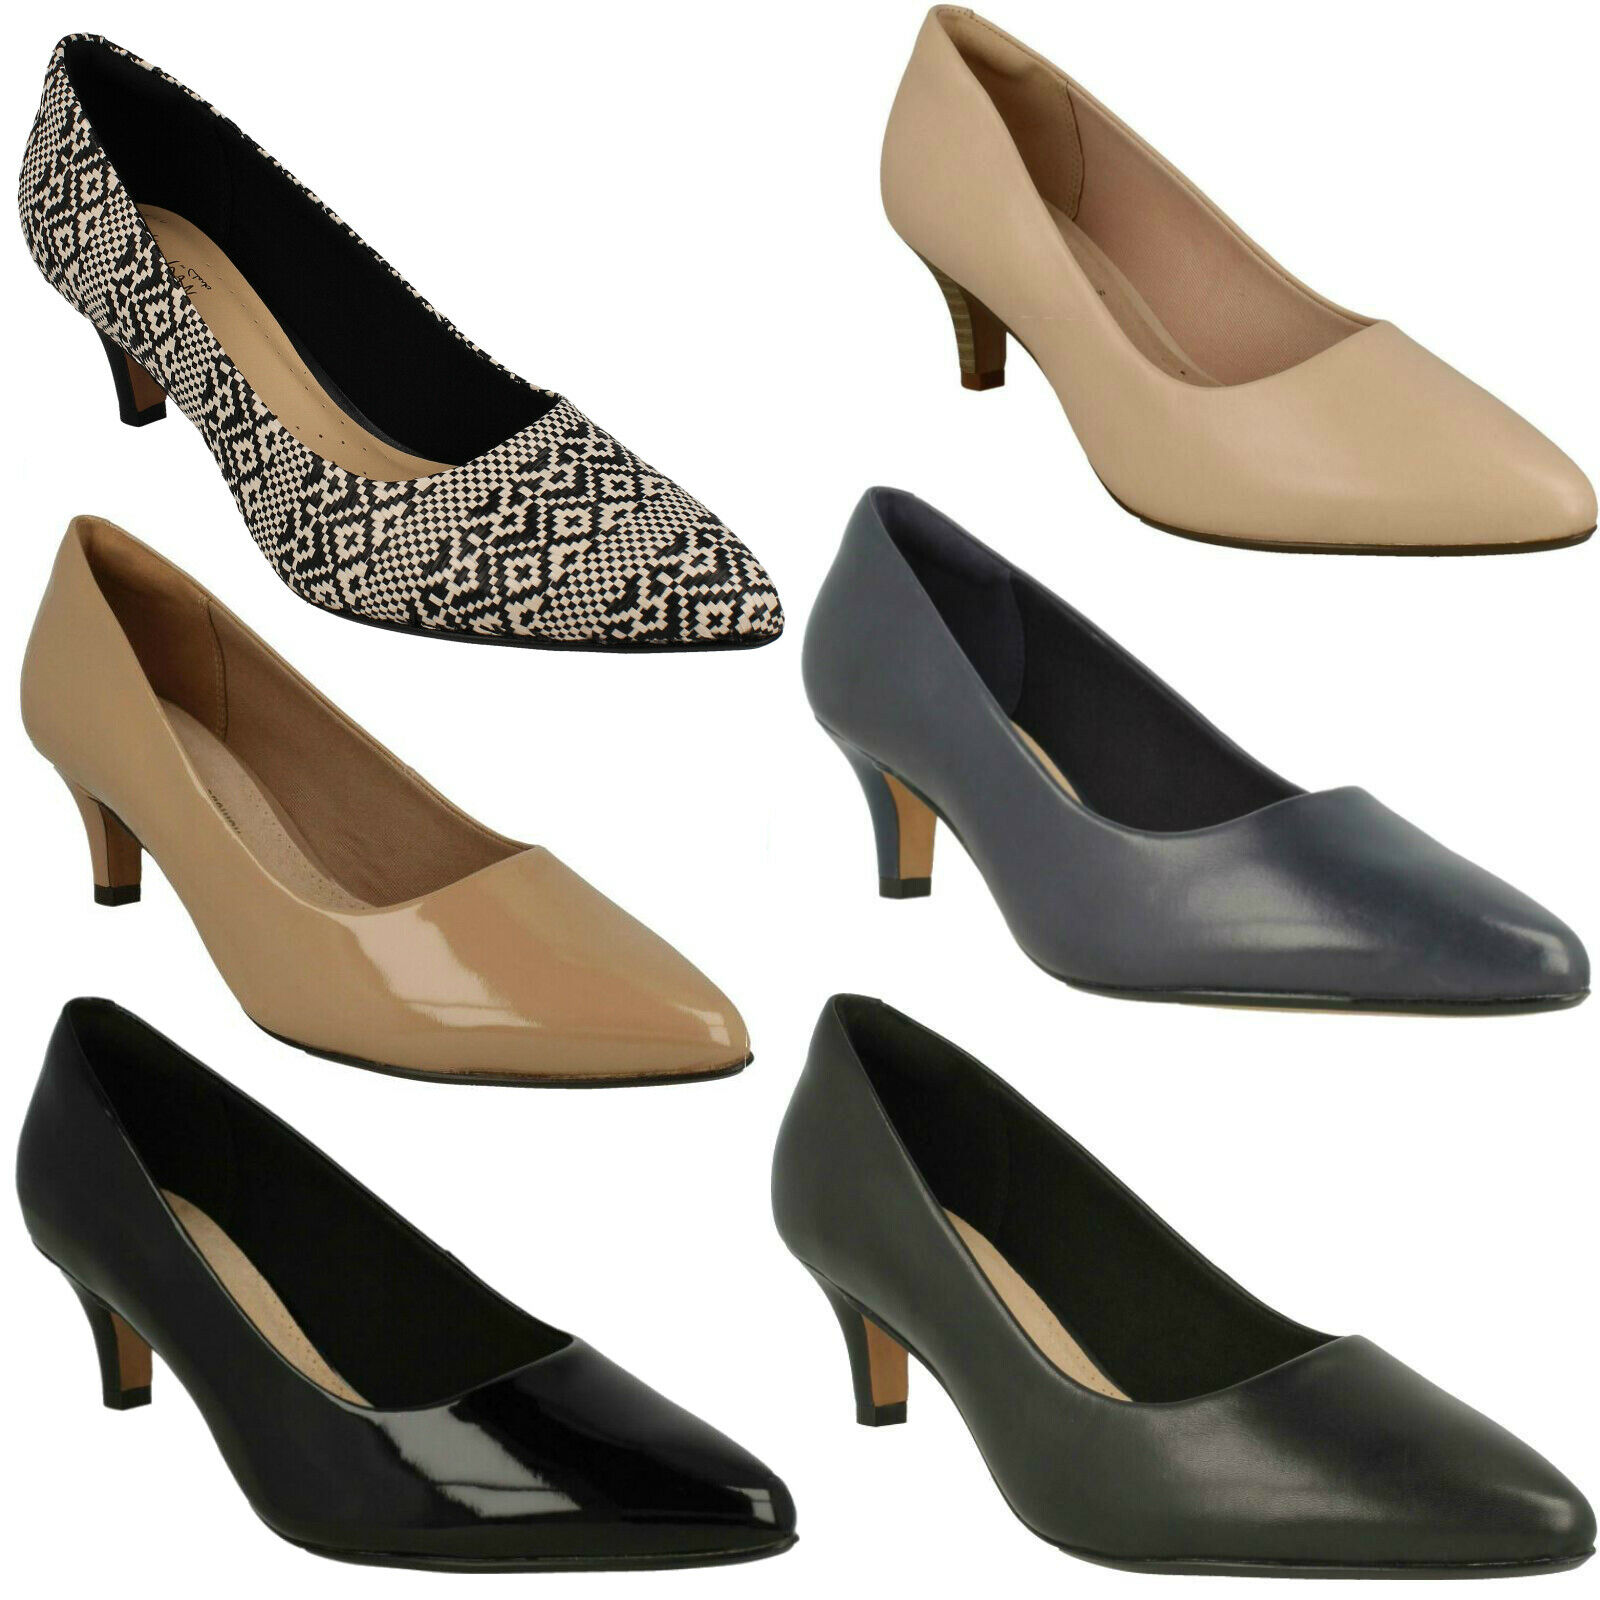 LADIES CLARKS PATENT LEATHER SLIP ON POINTED SMART COURT SHOES LINVALE JERICA